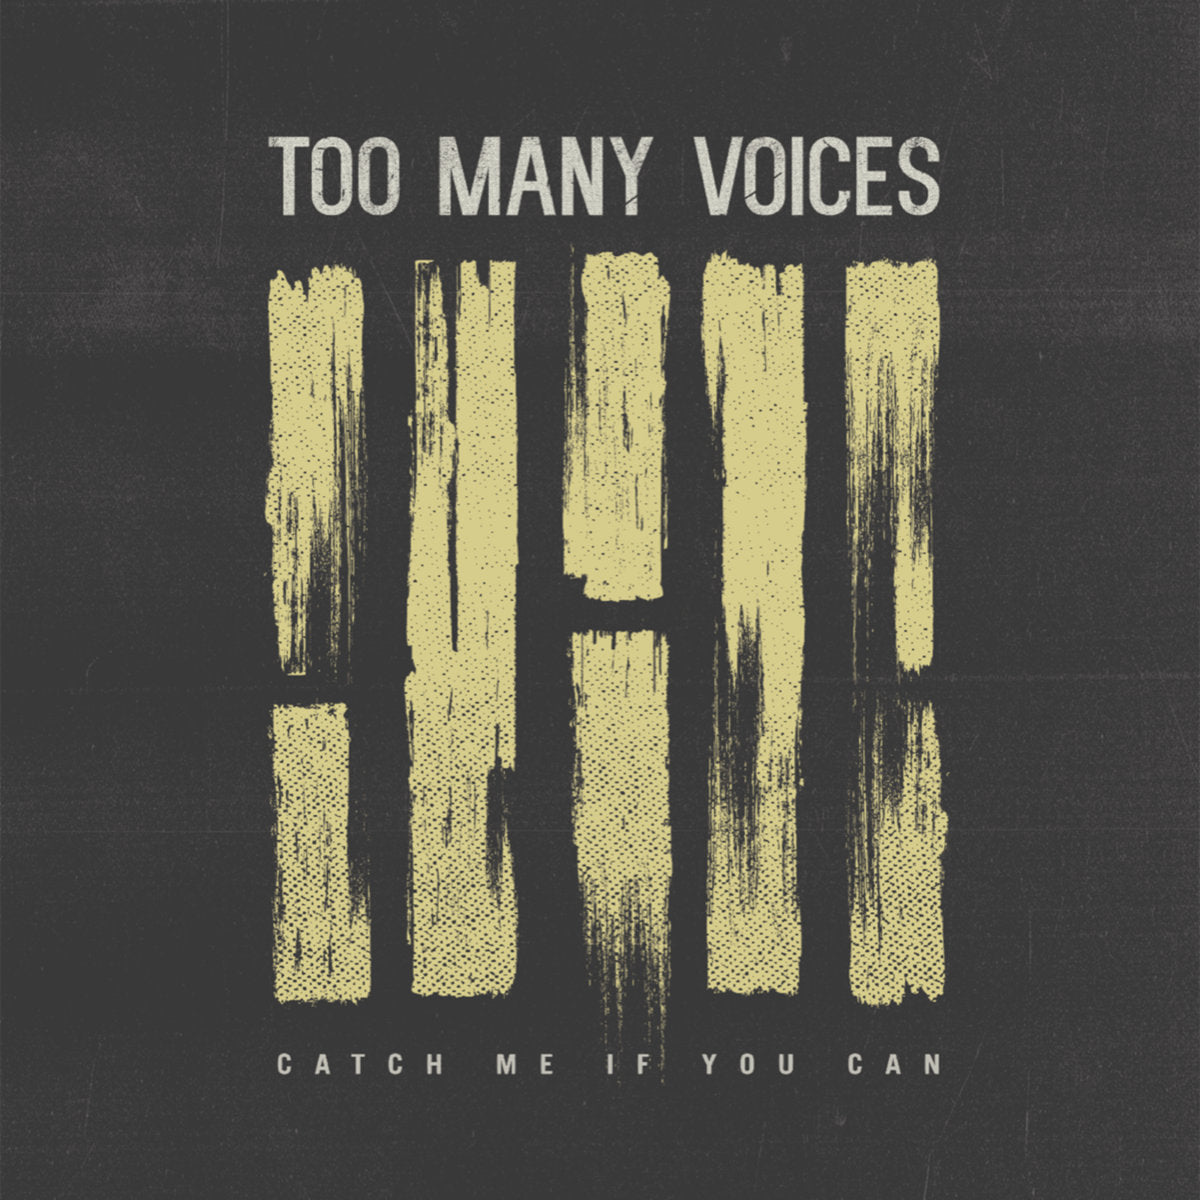 TOO MANY VOICES 'Catch me if you can' 12""